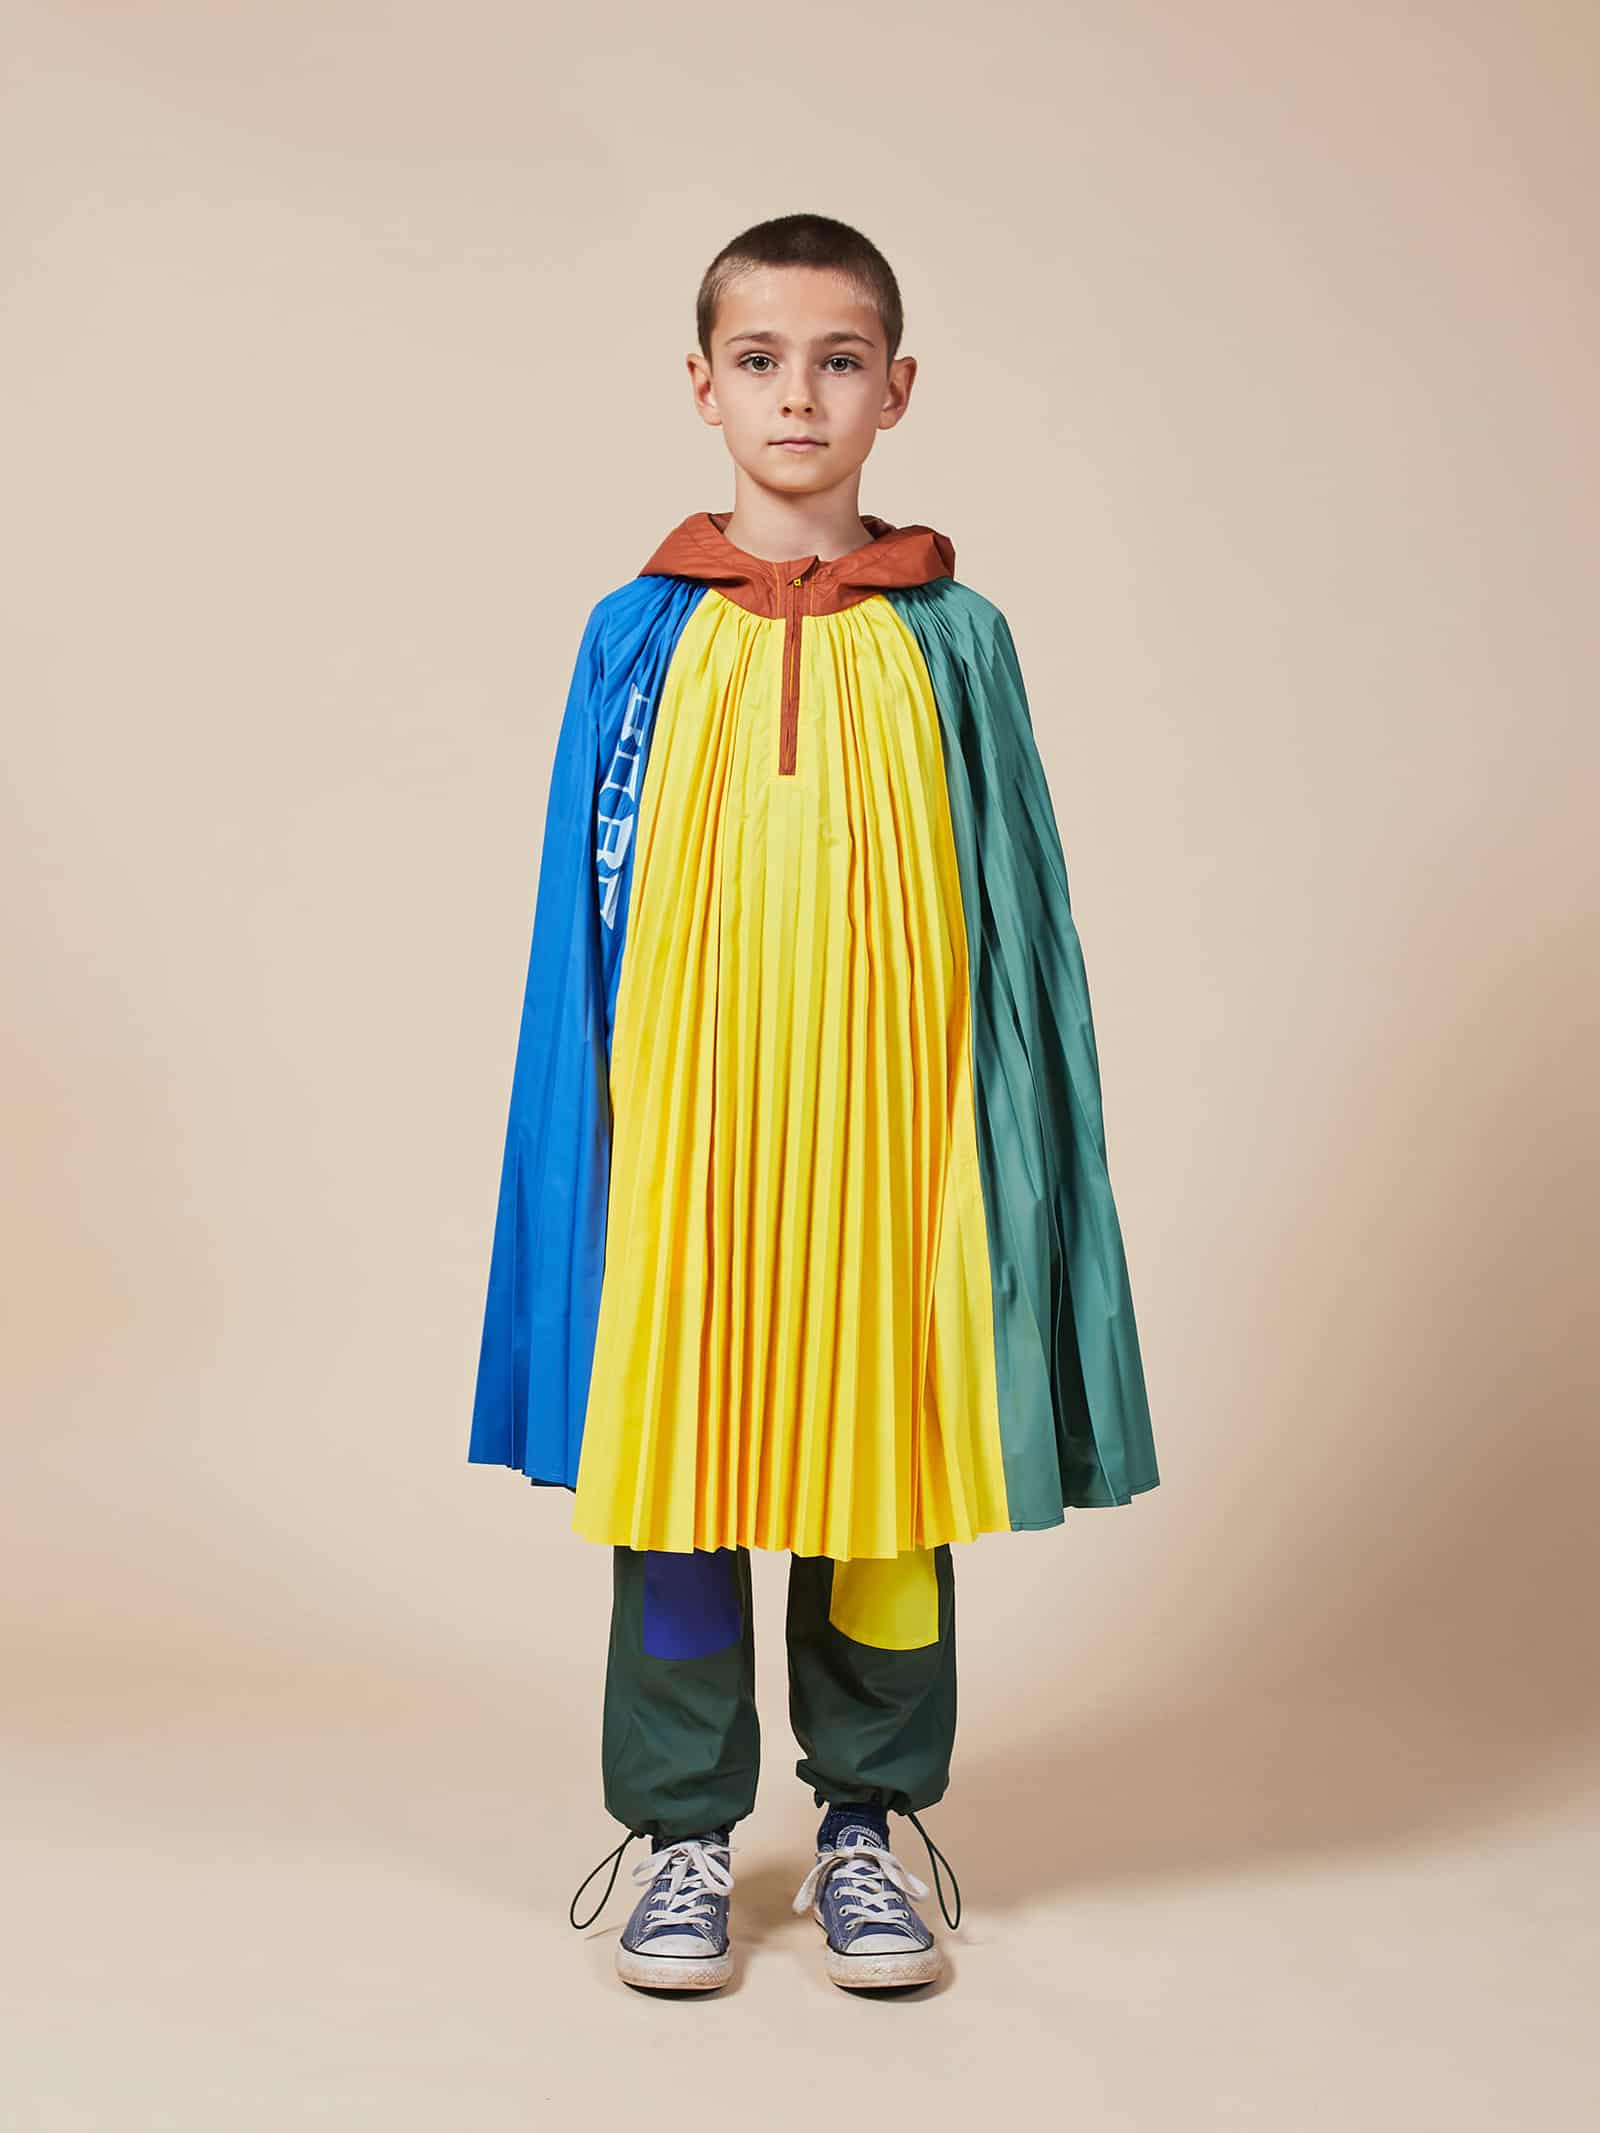 Bobo Choses AW20 collection - THE CATALOGUE OF MARVELLOUS TRADES